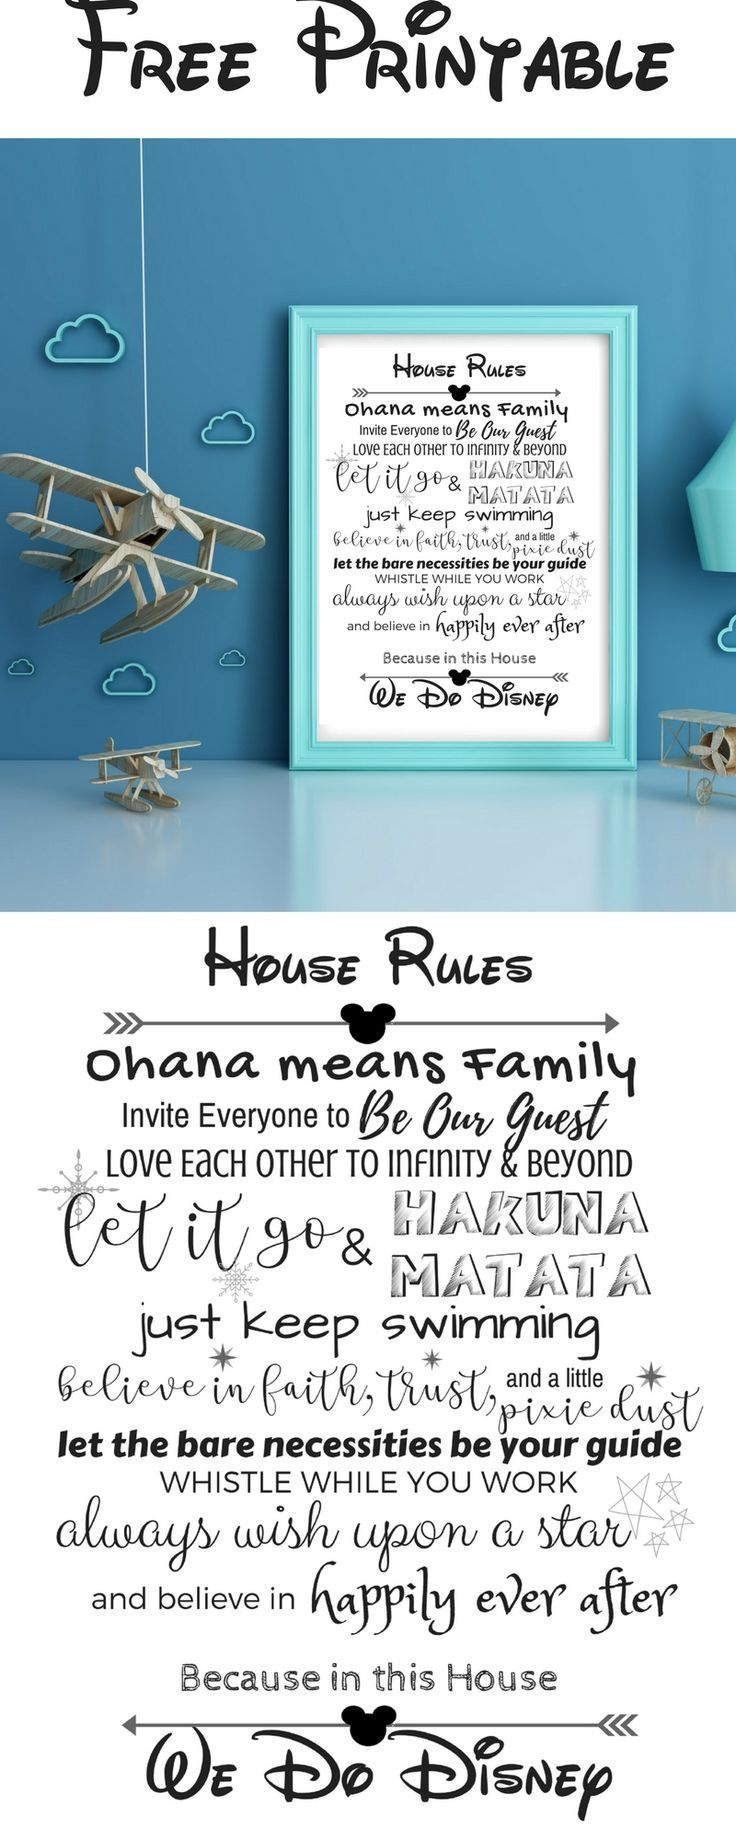 Disney House Rules Free Printable - the perfect home decor for any #Disney fan!  #DisneyWorld #freeprintable #freebie #disneyprincess #homedecor #printable